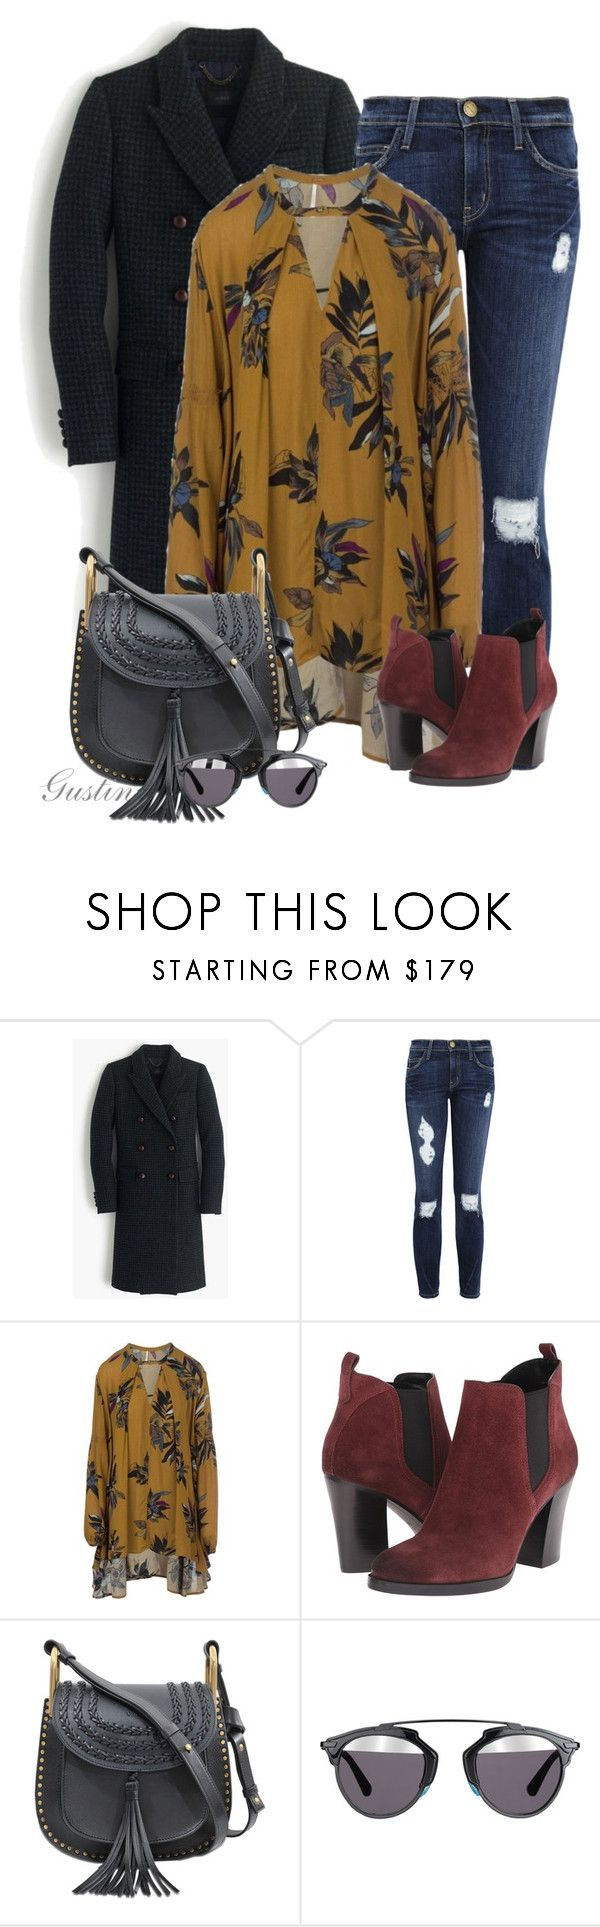 """""""fall"""" by stacy-gustin ❤ liked on Polyvore featuring J.Crew, Current/Elliott, People Tree, Marc Fisher LTD, Chloé, Christian Dior and ootd"""